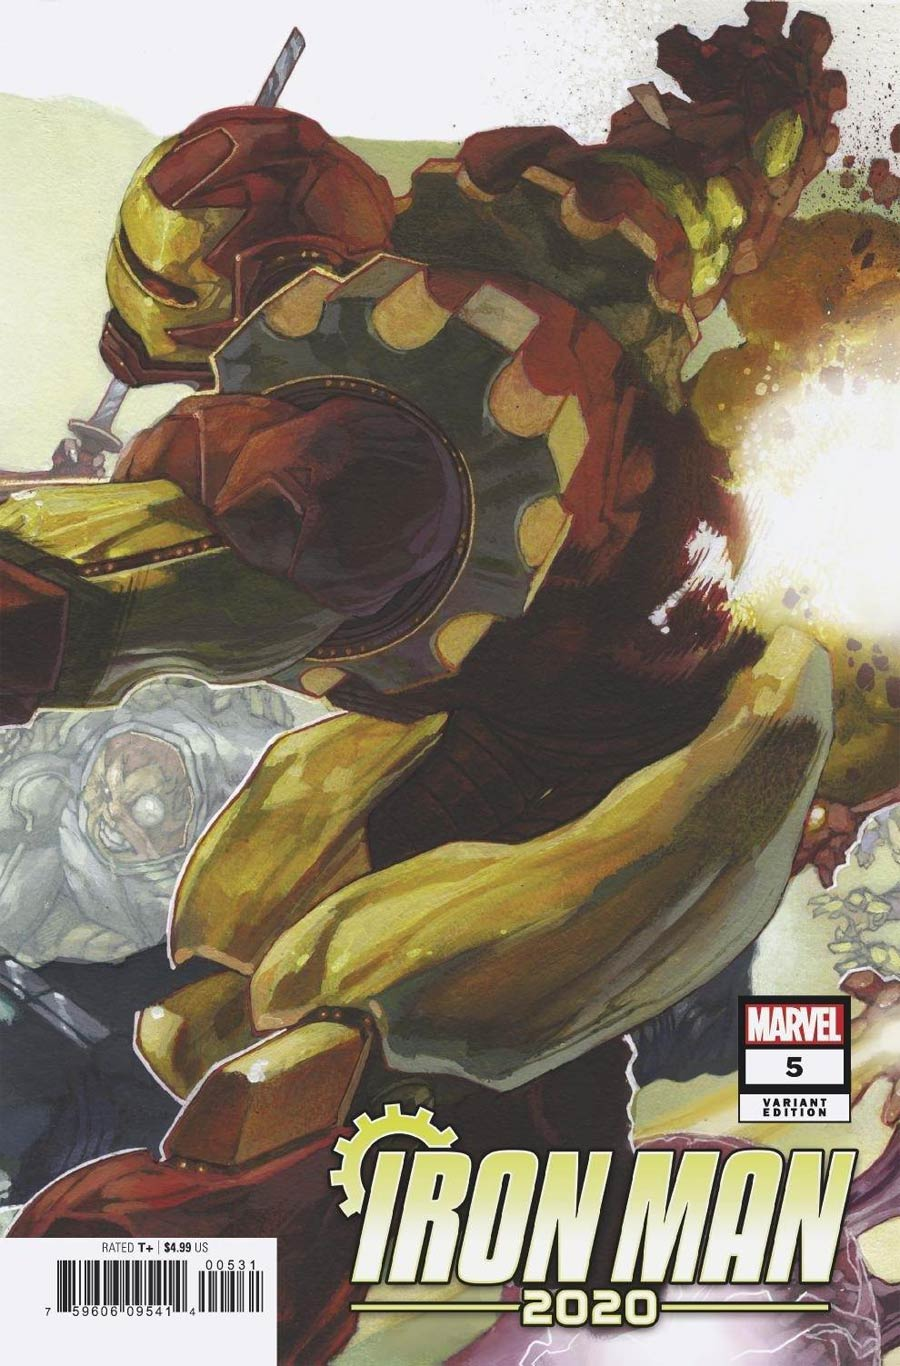 Iron Man 2020 #5 Cover C Variant Simone Bianchi Connecting Cover